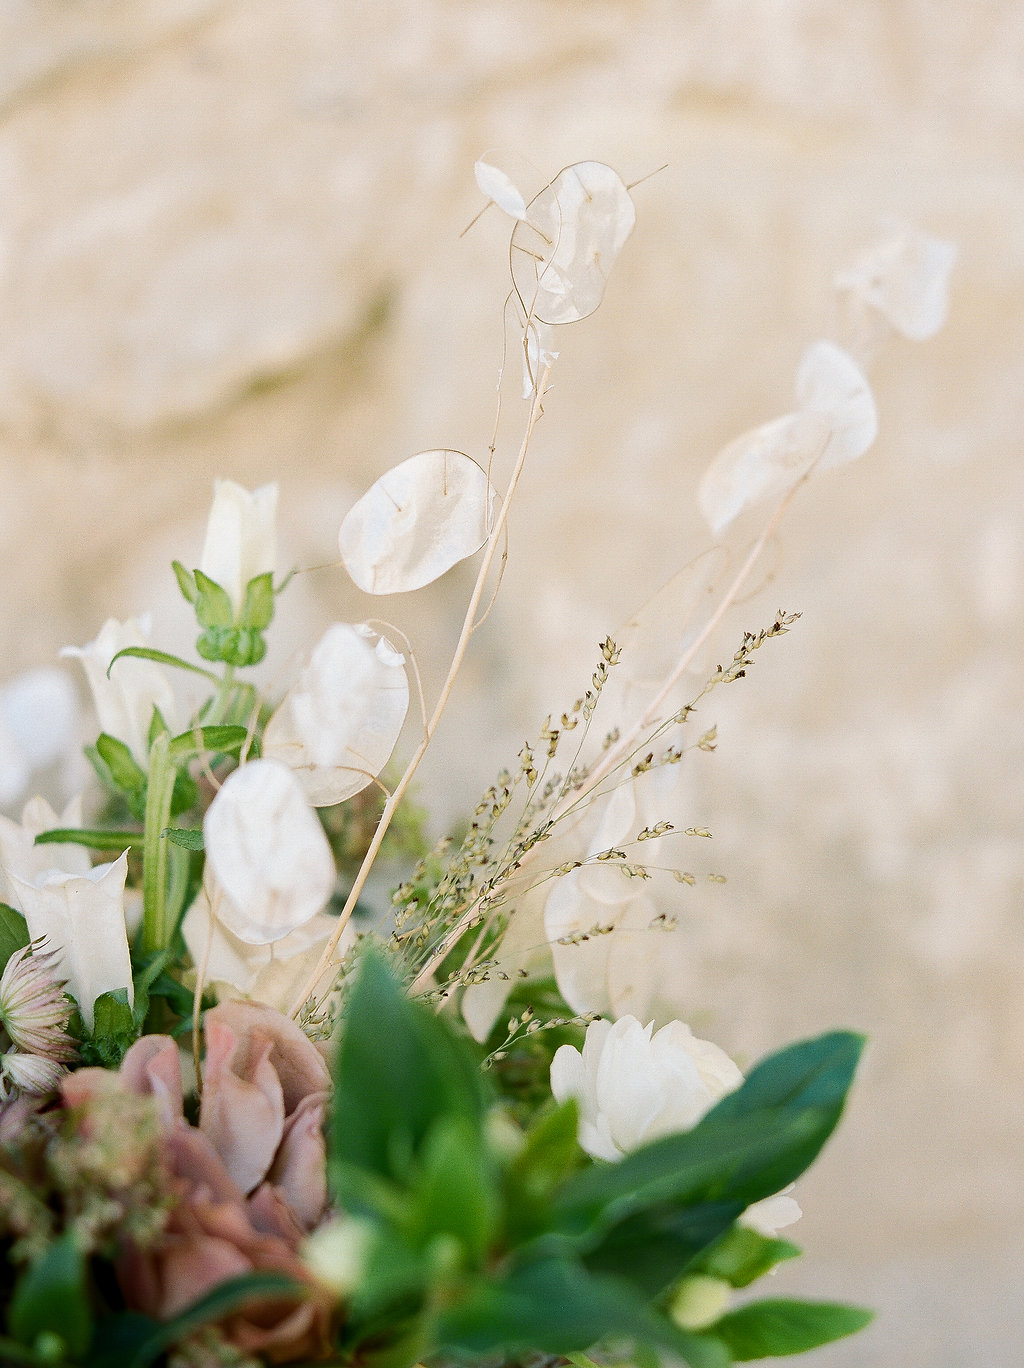 Spanish Mission Style Wedding Ideas Summer Flowers Finding Flora San Juan Capistrano European Venues California Centerpiece Lunaria